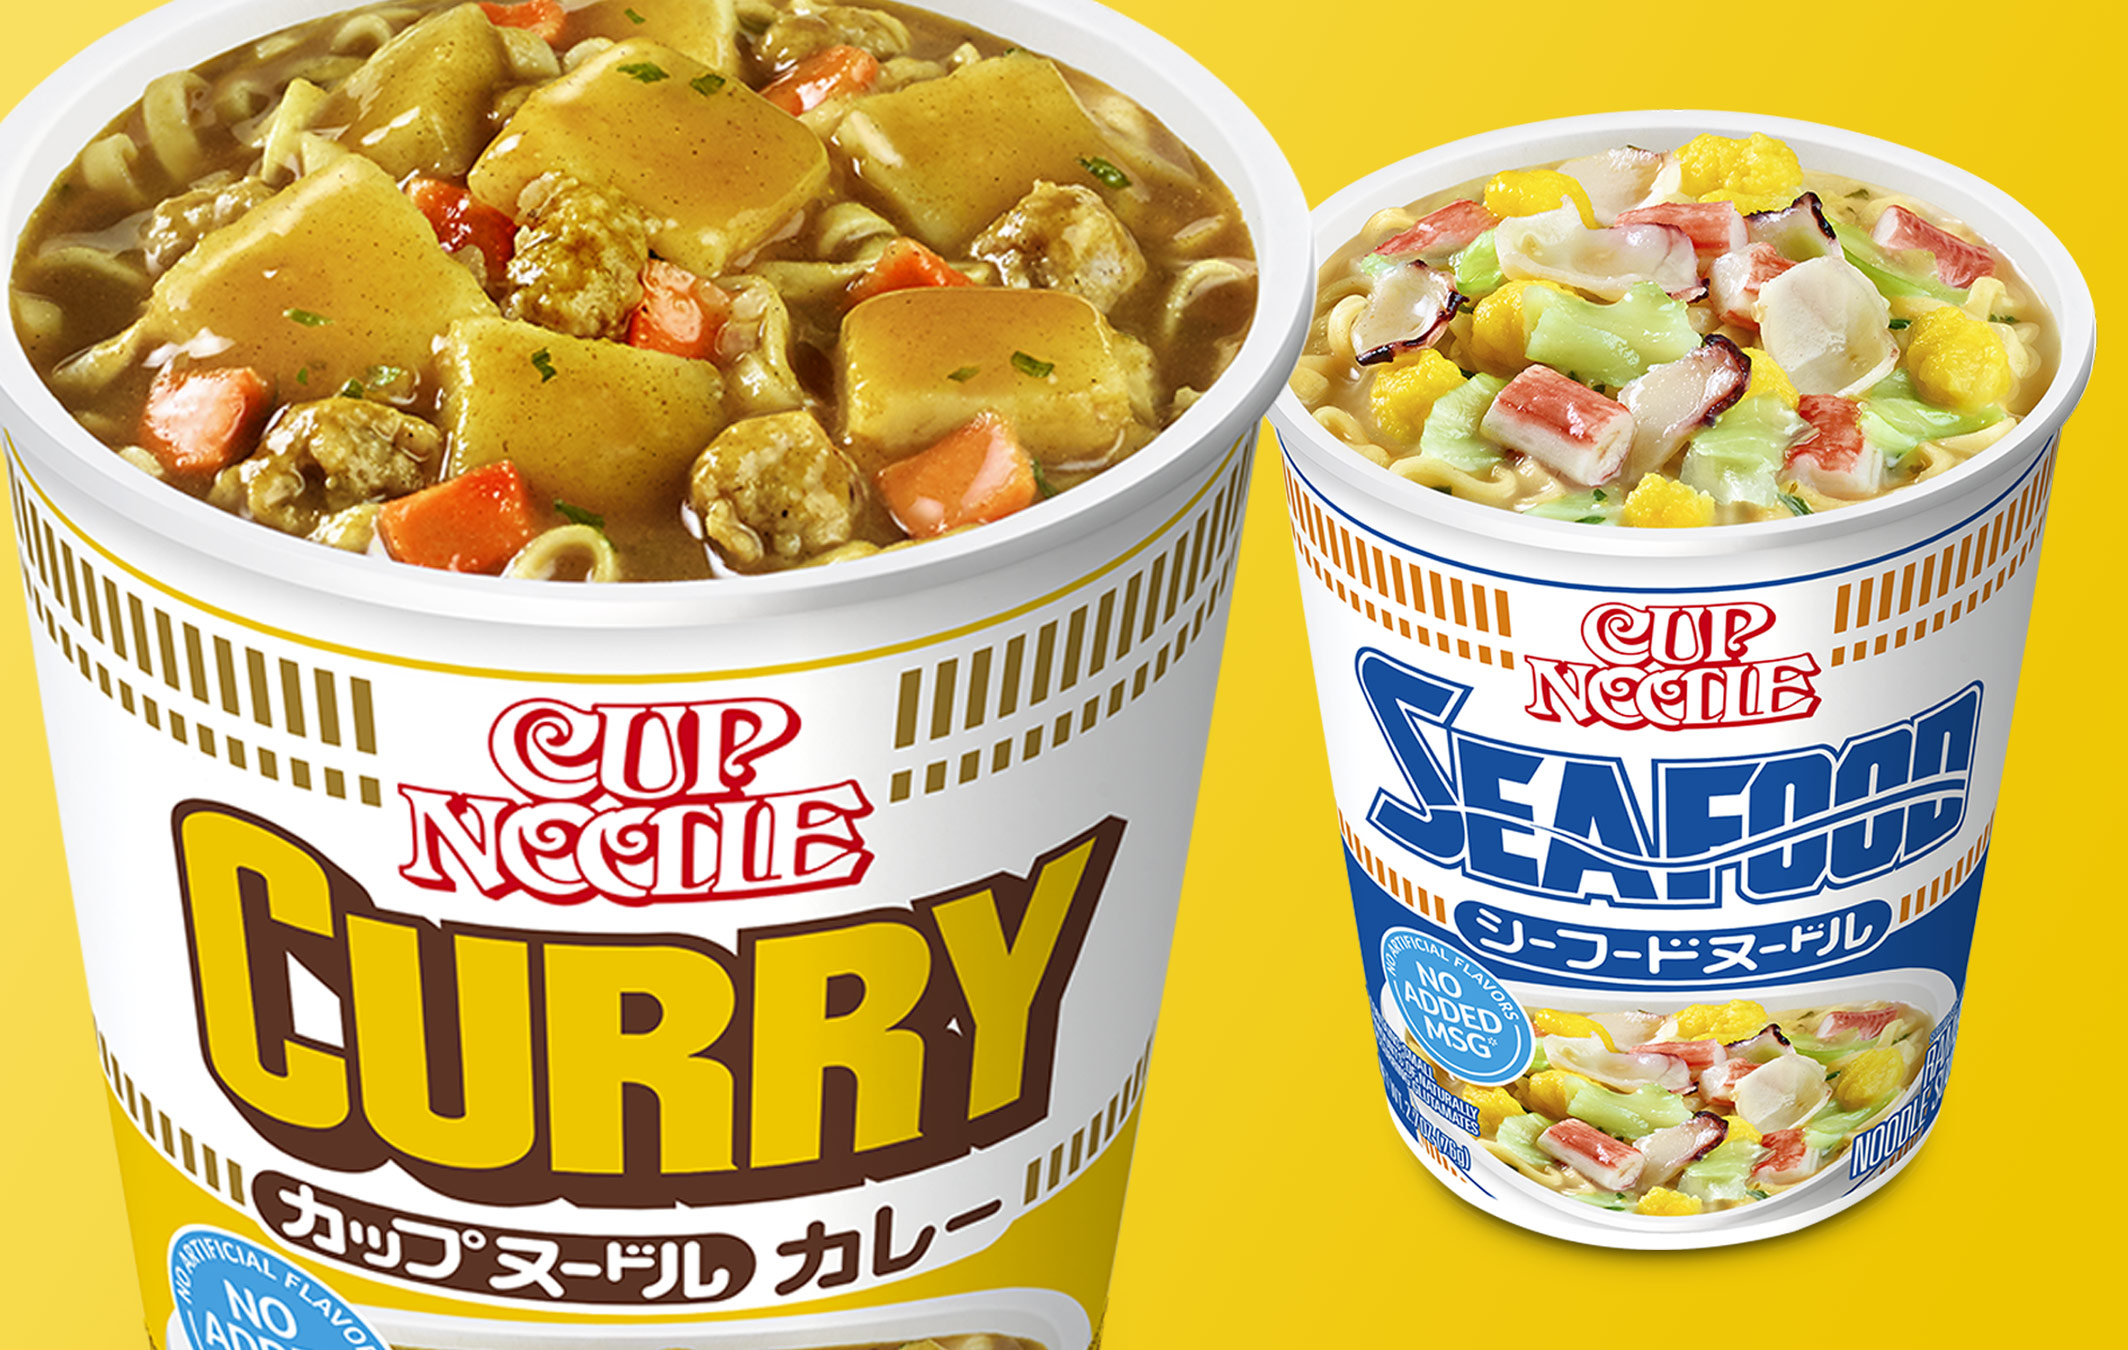 Nissin Cup Noodles Curry and Seafood